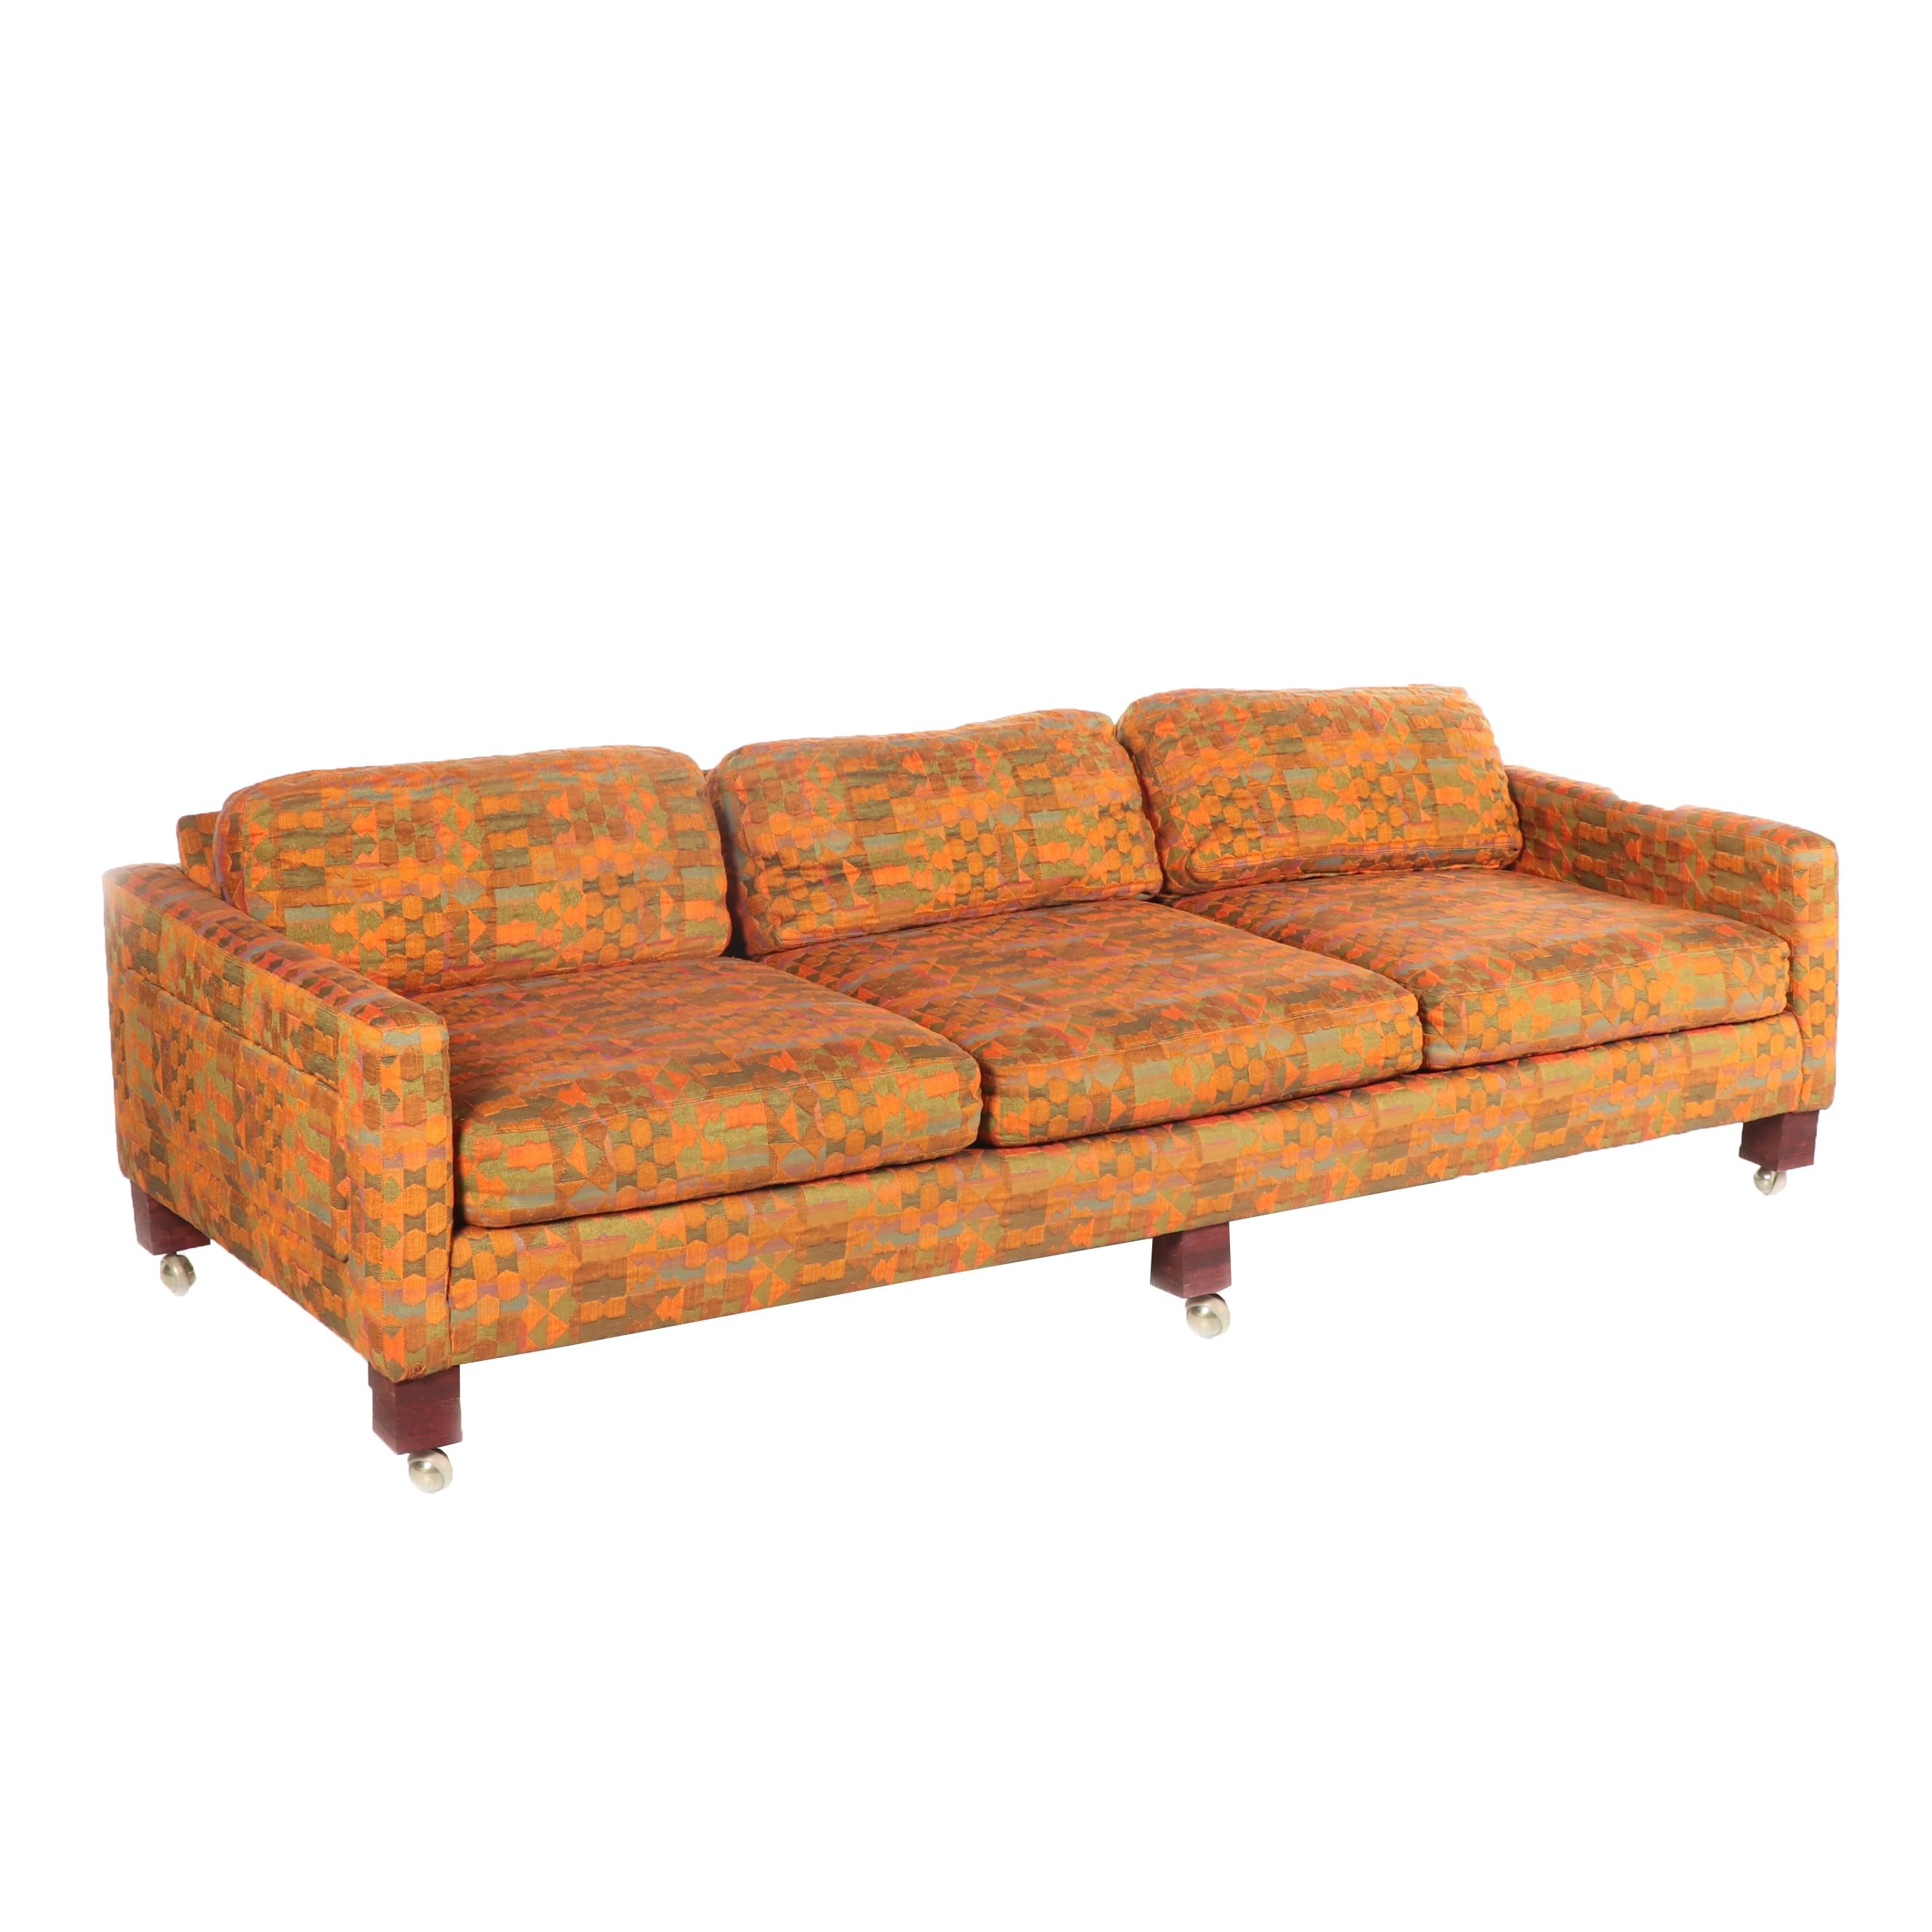 Mid Century Modern Brocade Upholstered Sofa on Casters, Mid-20th Century